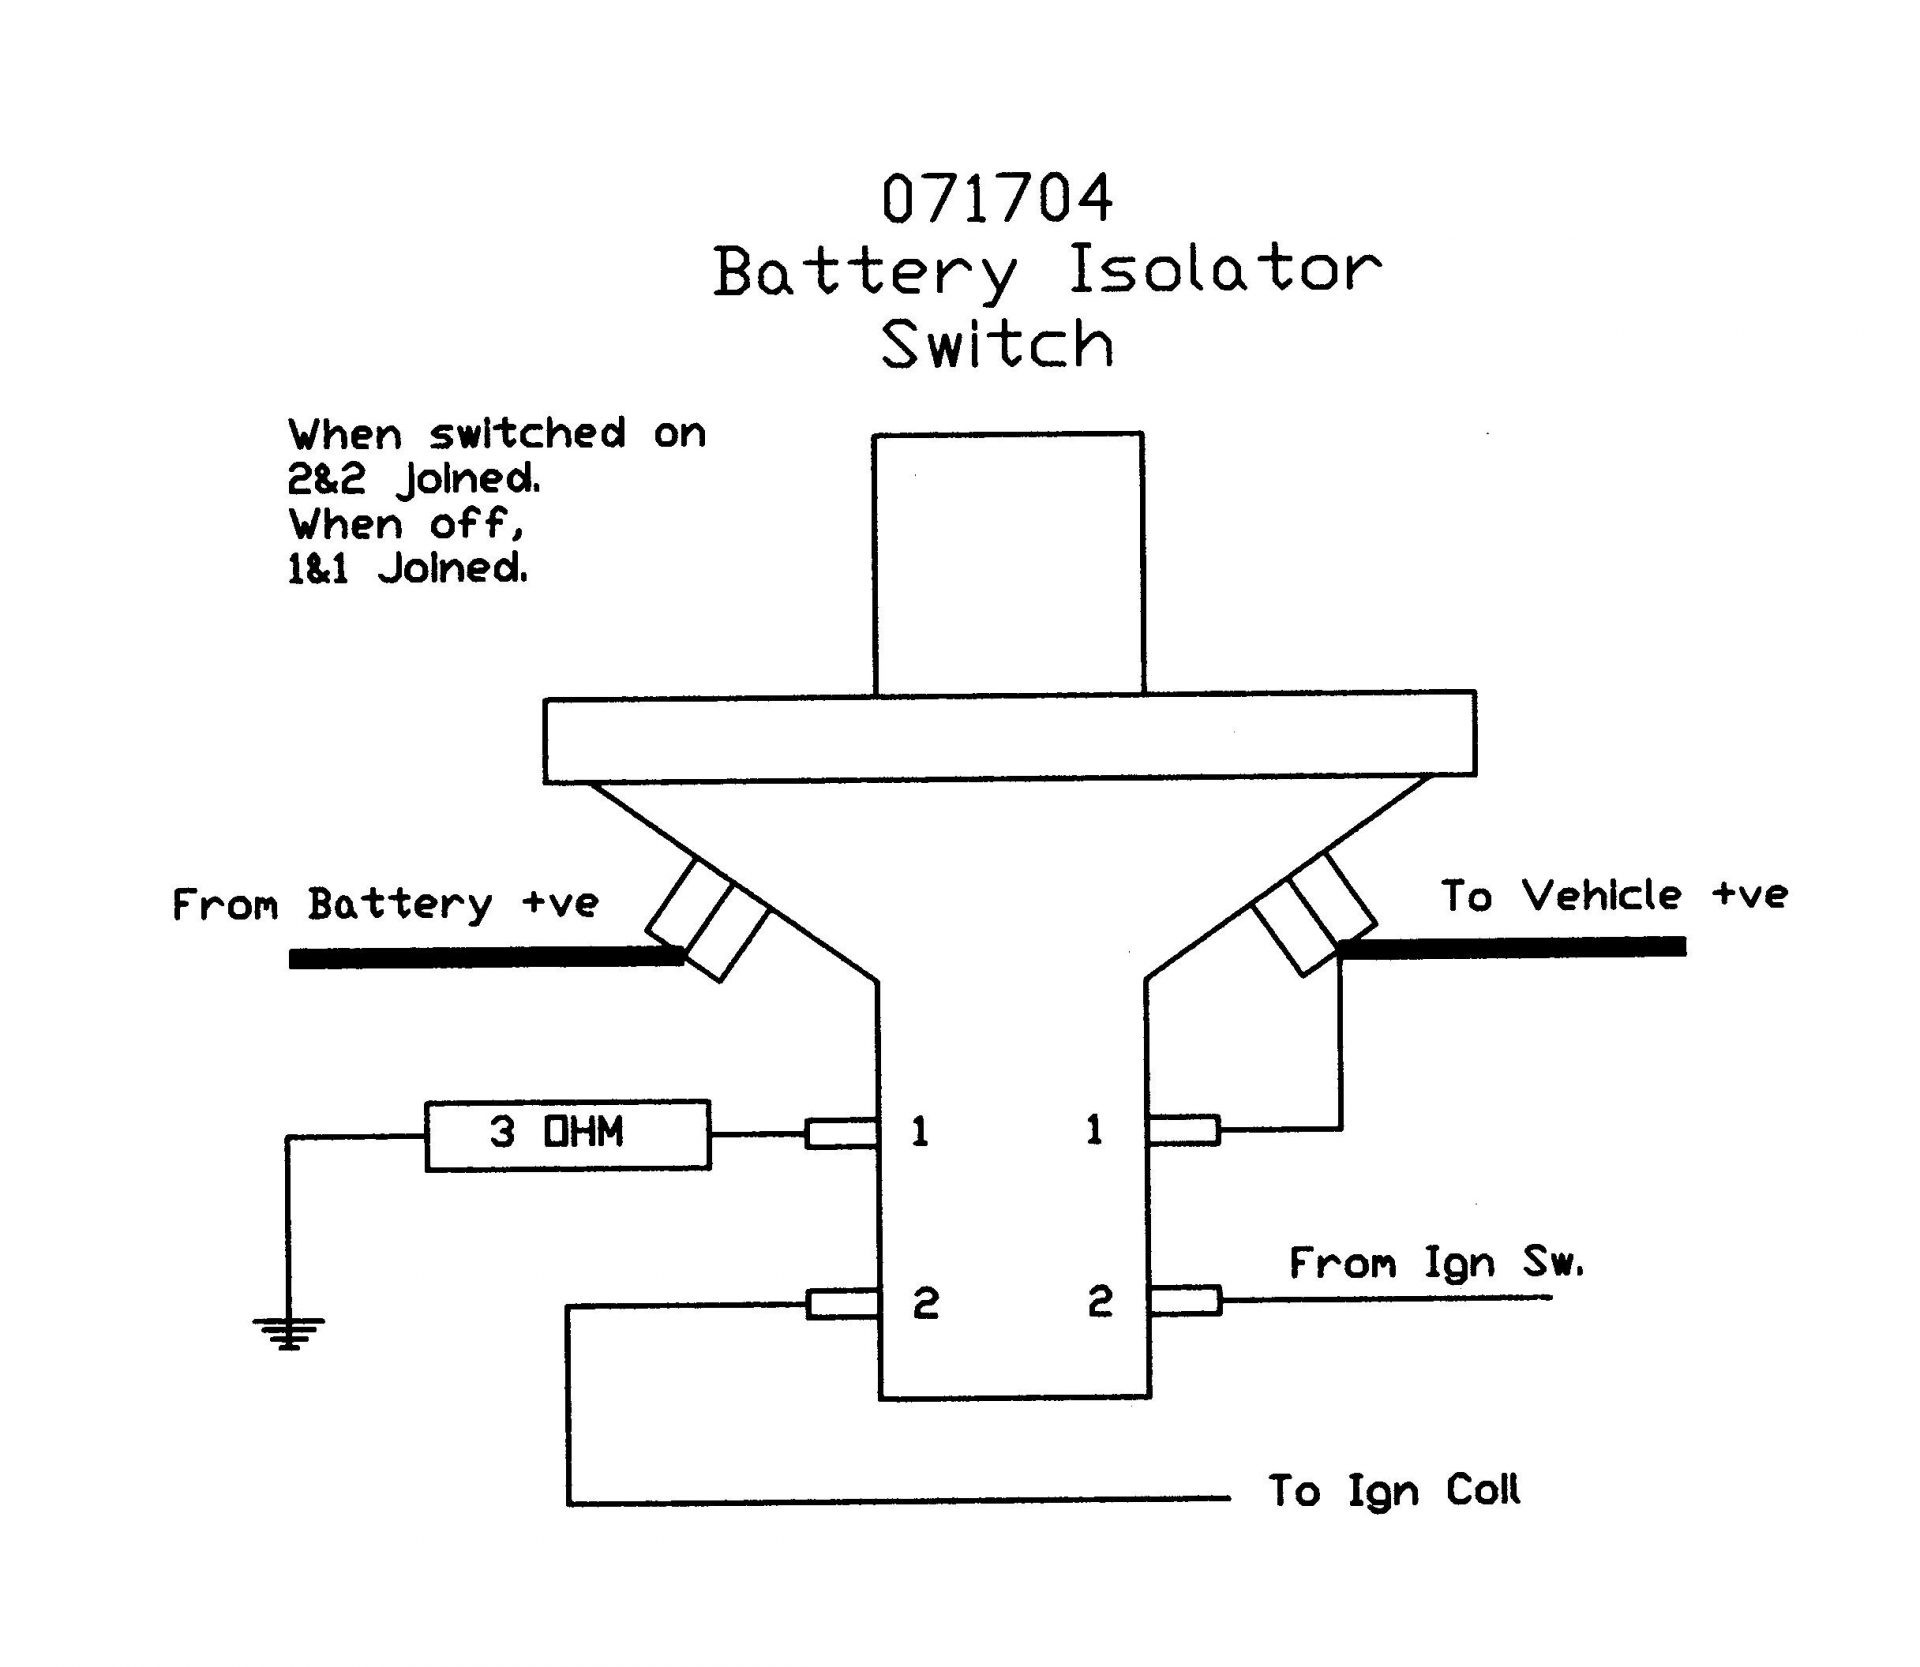 Battery Isolatorng Diagram Switch Removable Key Splash Proof Cover Best Eta Motorhome Isolator Wiring Manufacturers